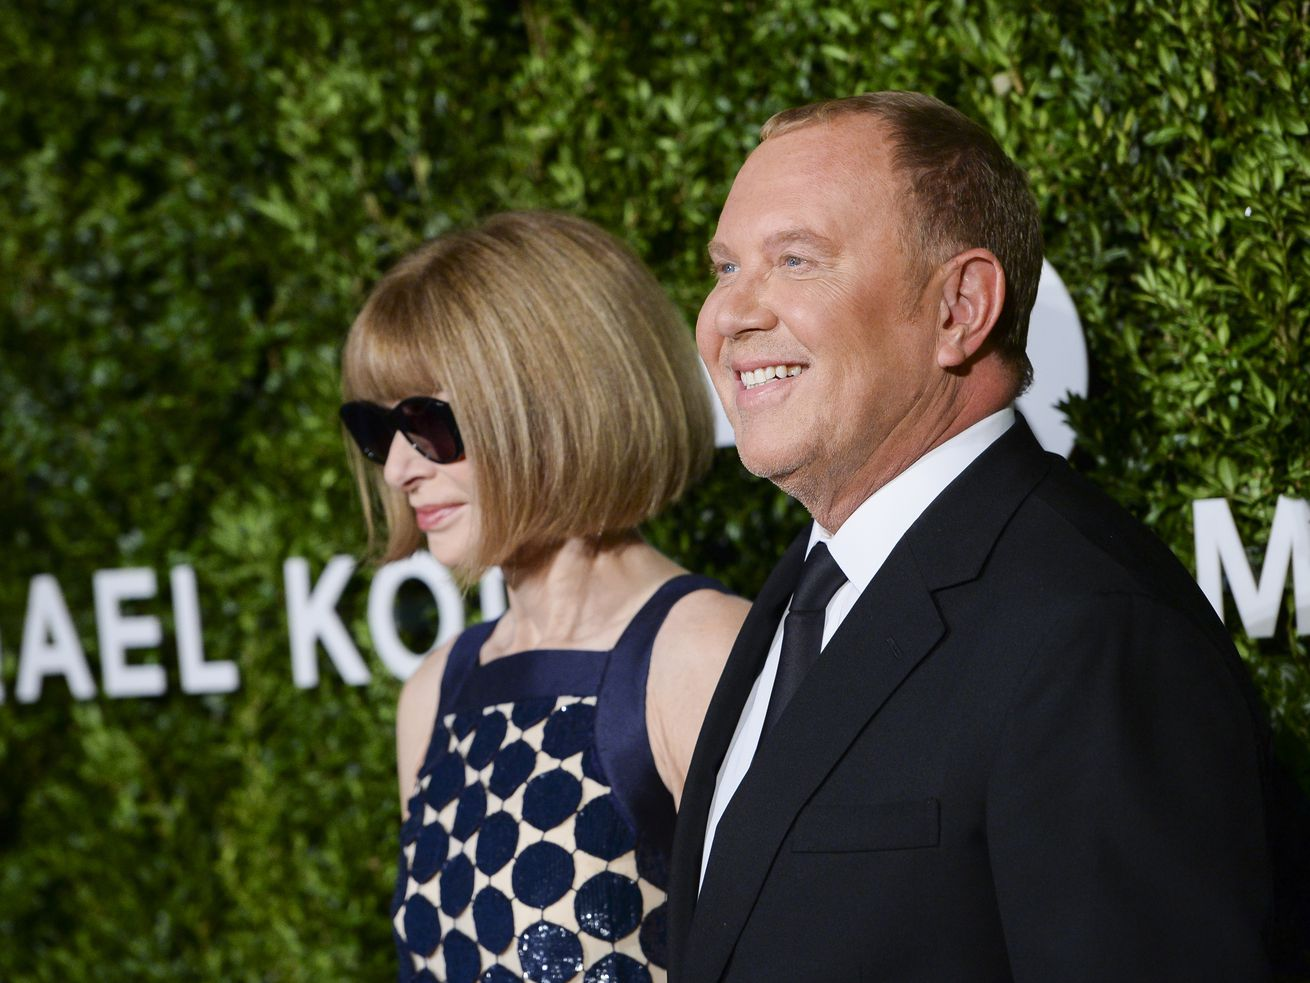 Michael Kors and Vogue editor Anna Wintour pose on the red carpet at a charity event in New York City in 2016.